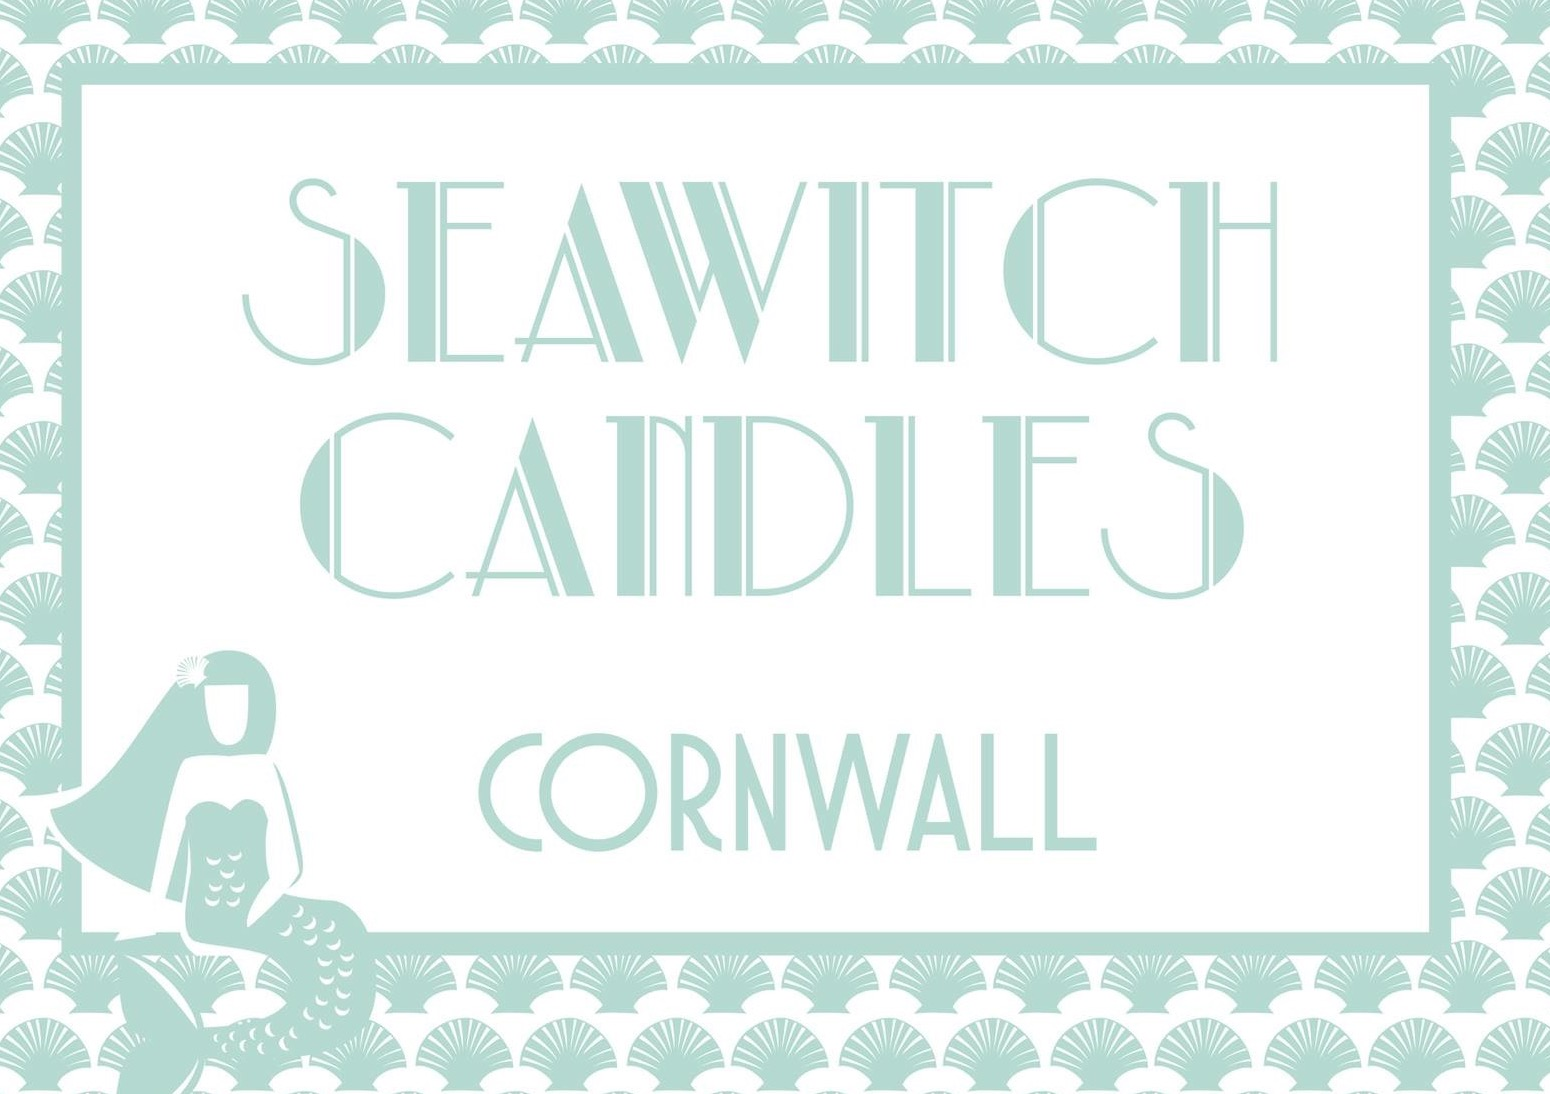 Seawitch Candles